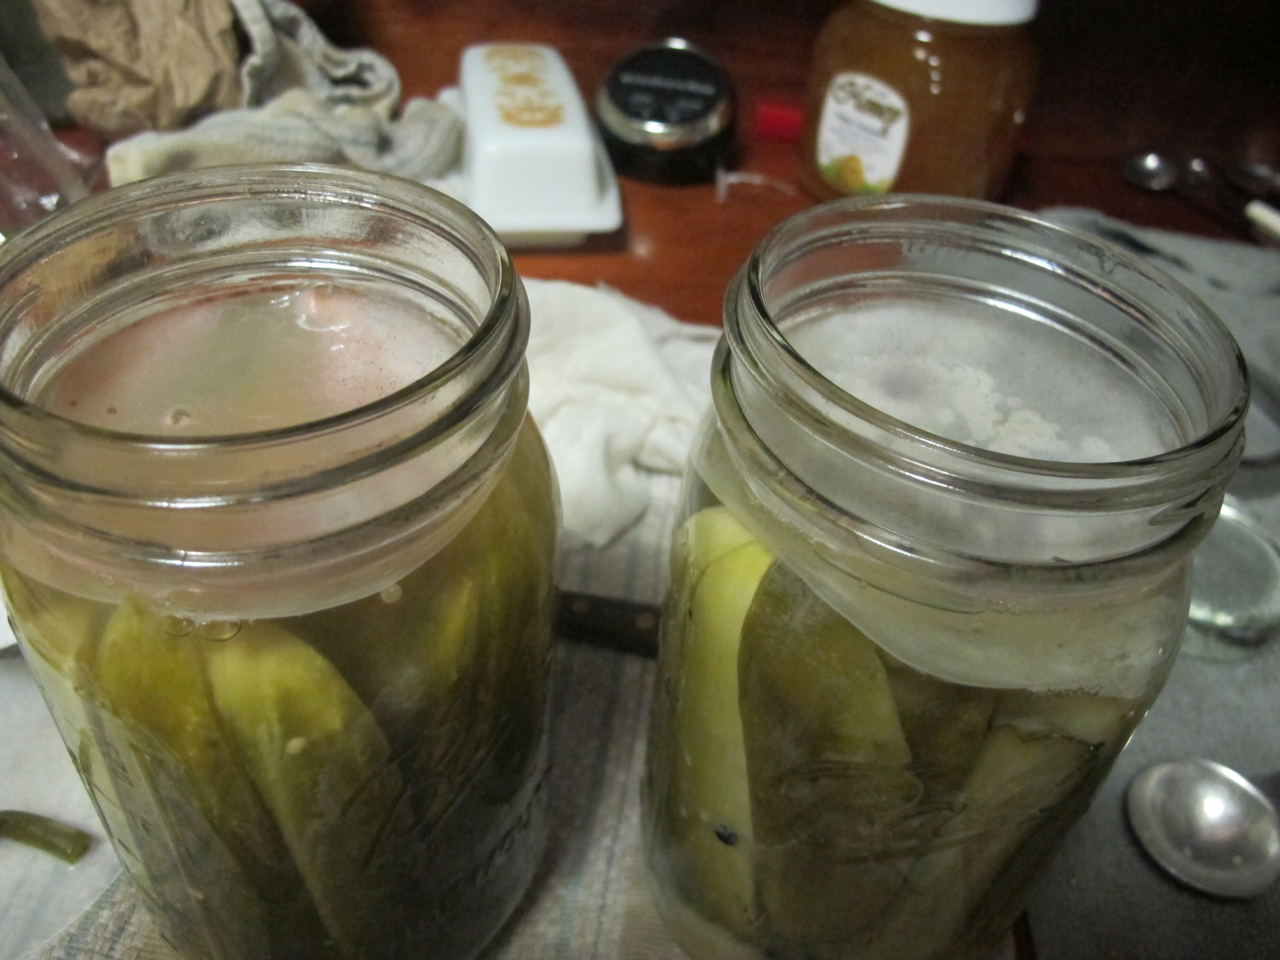 troubleshooting pickle mold